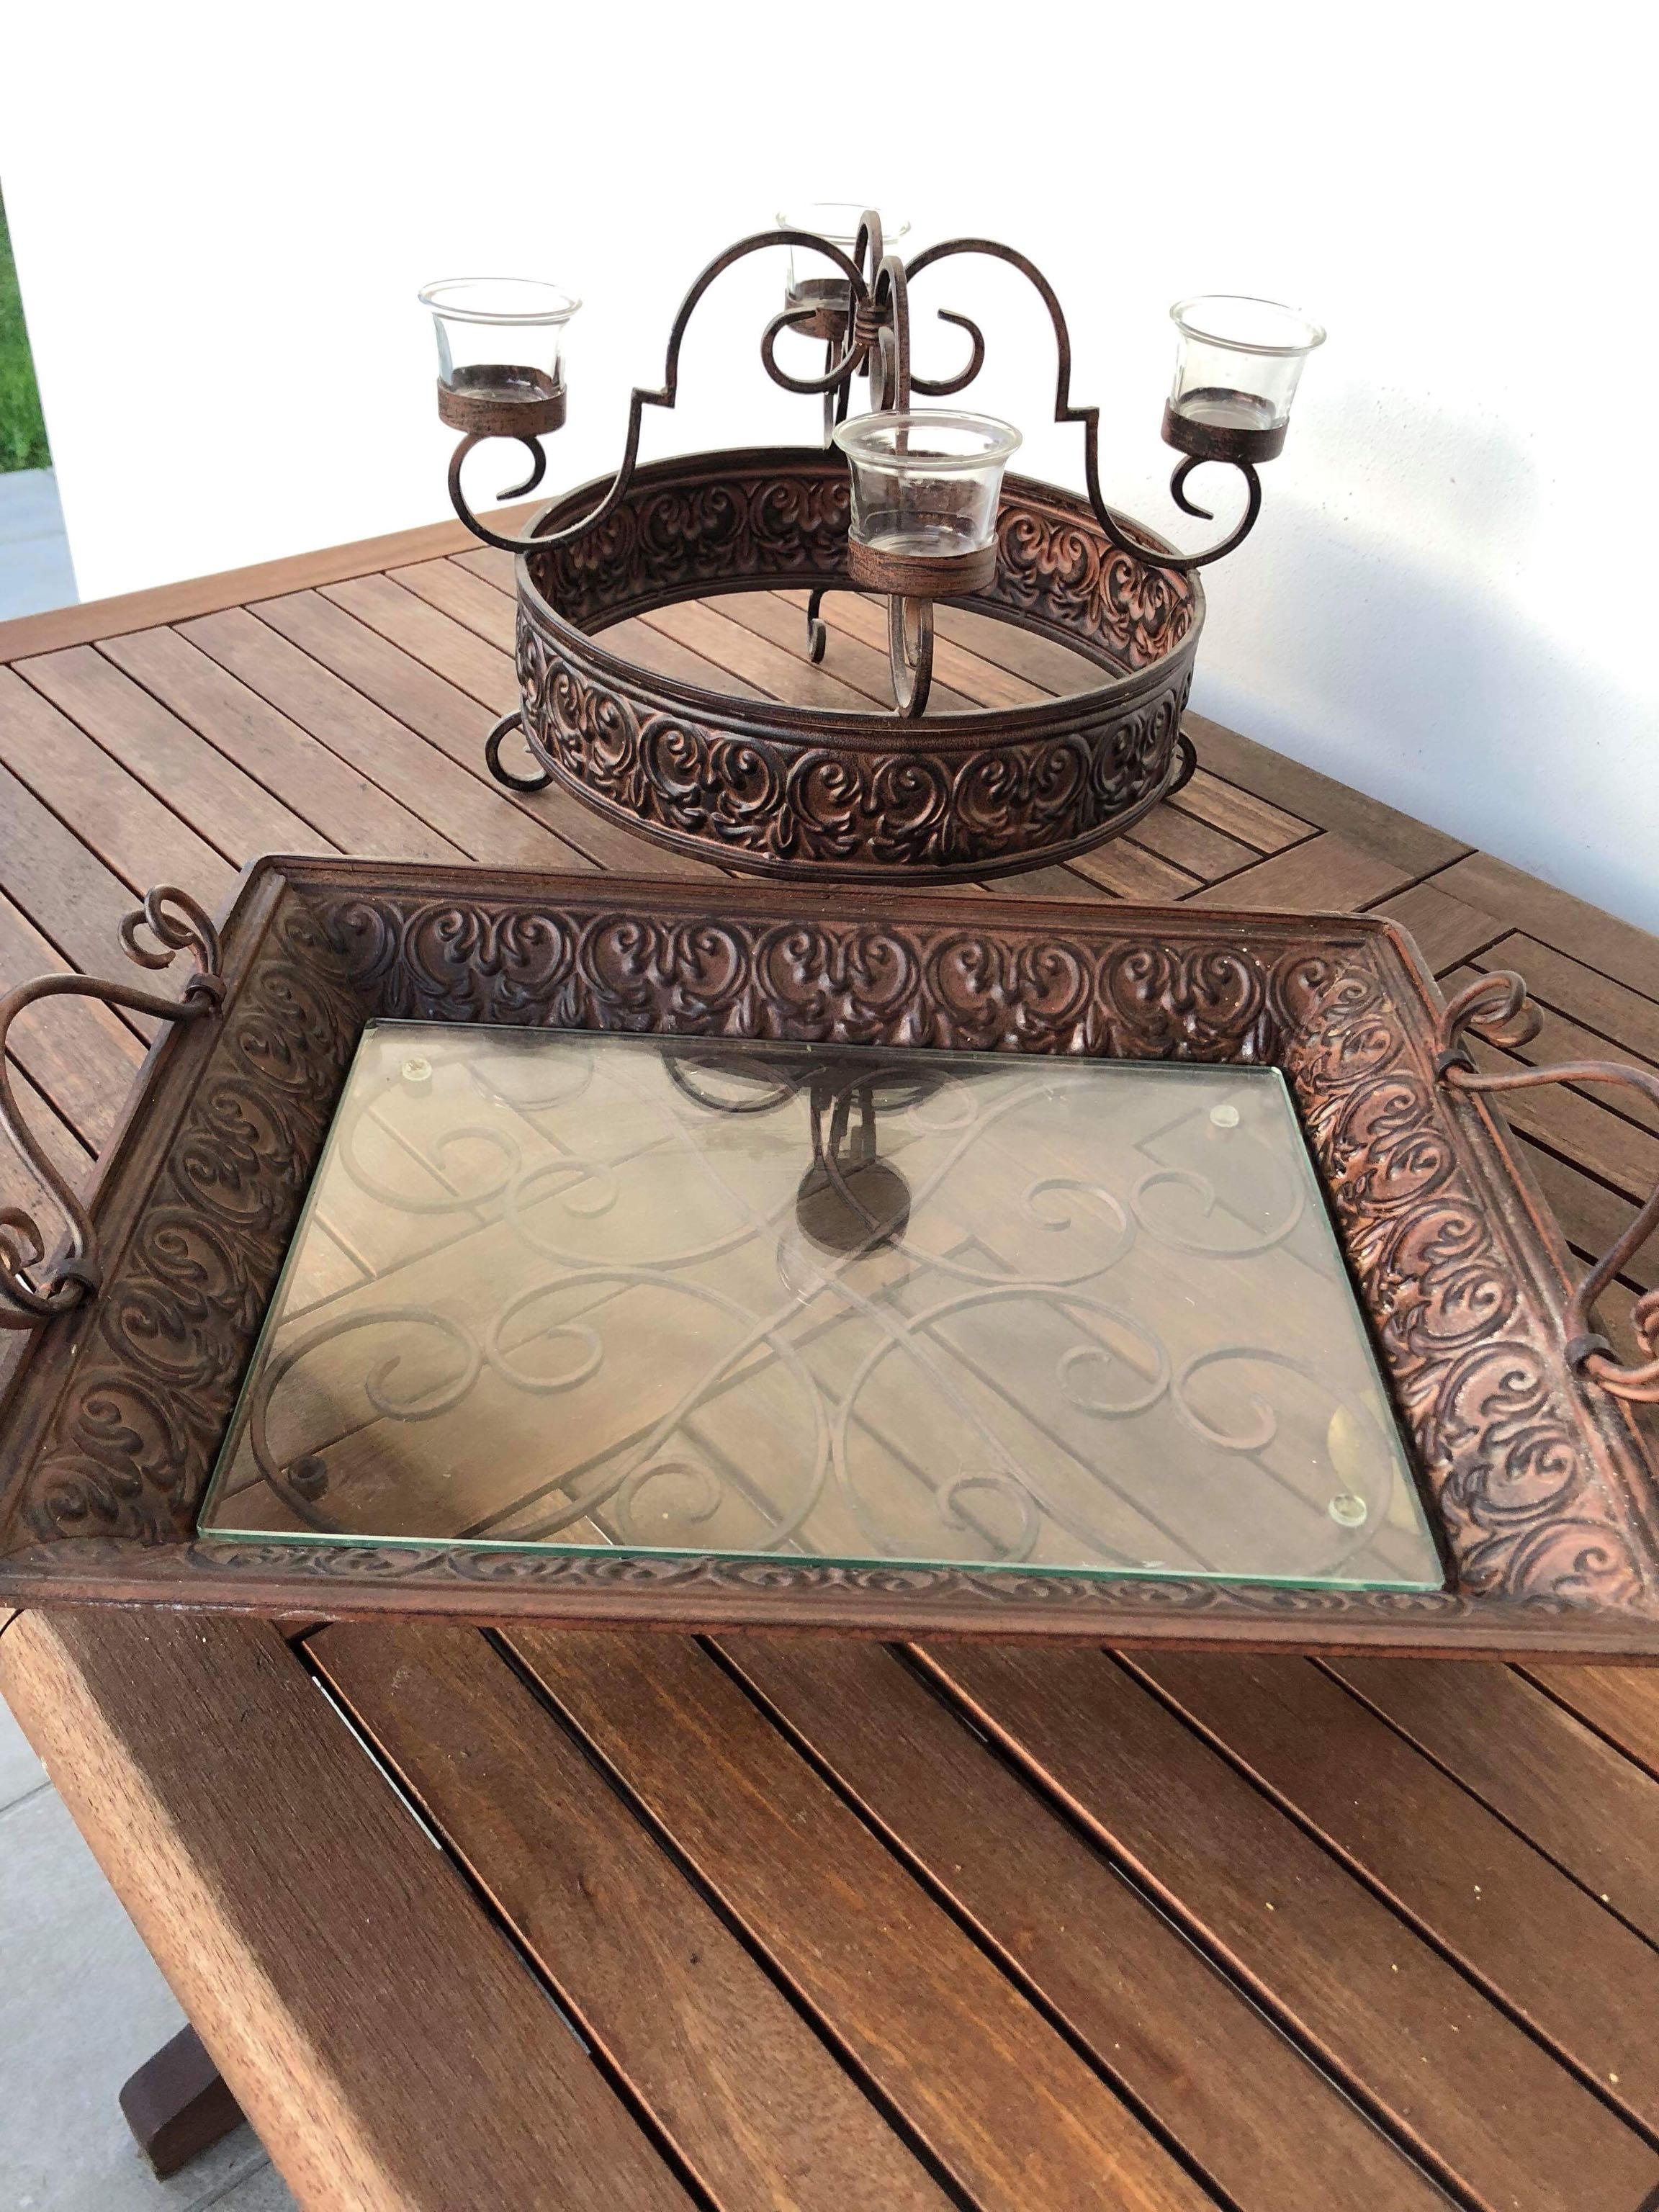 Wrought Iron Serving Tray and Candle Holder